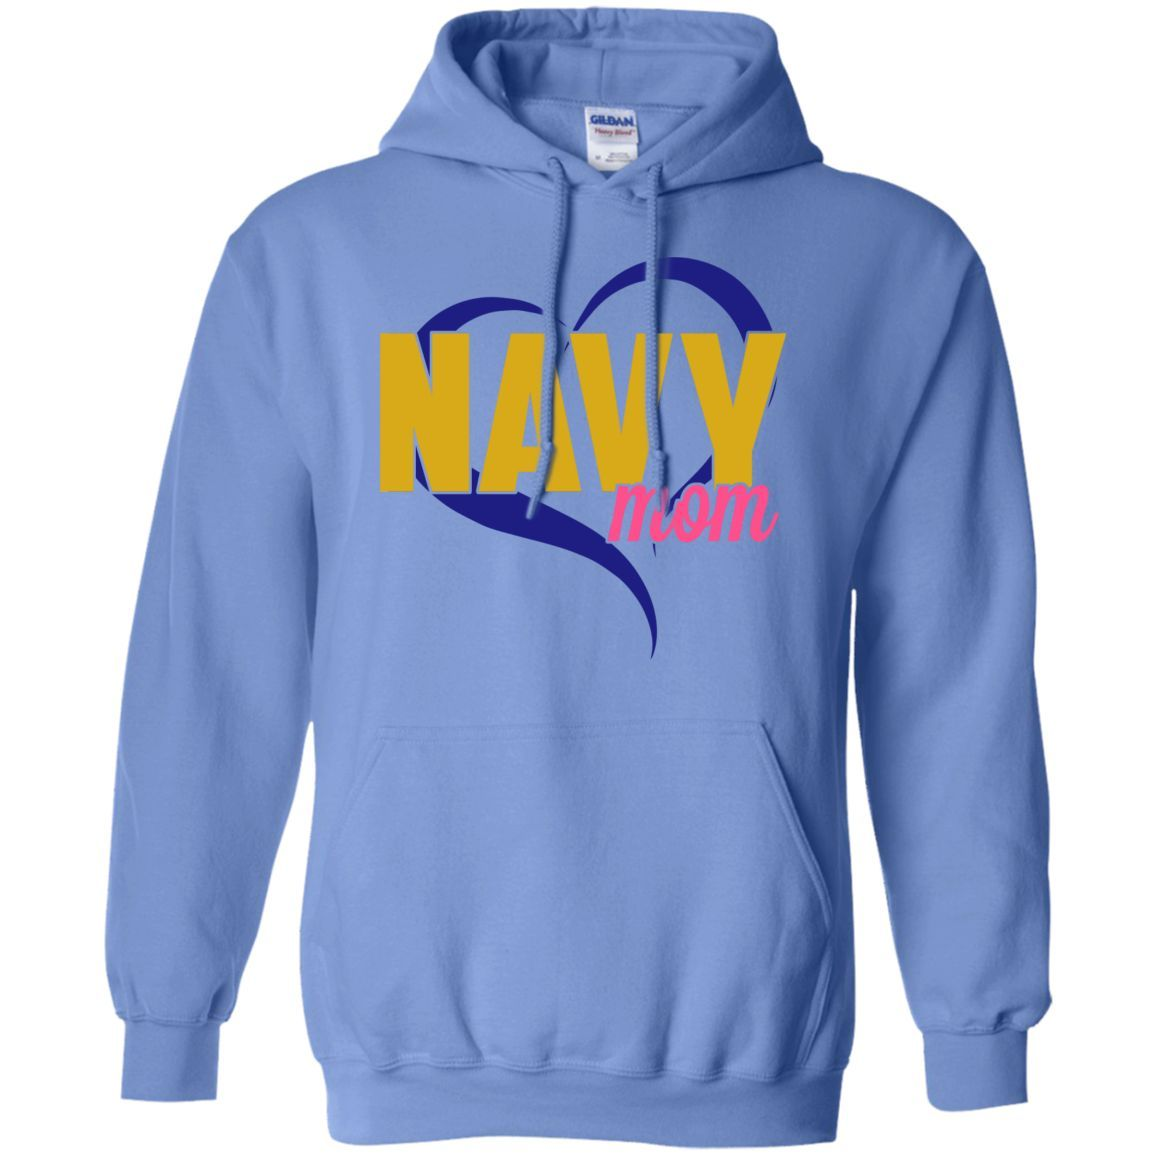 Navy Mom Collection